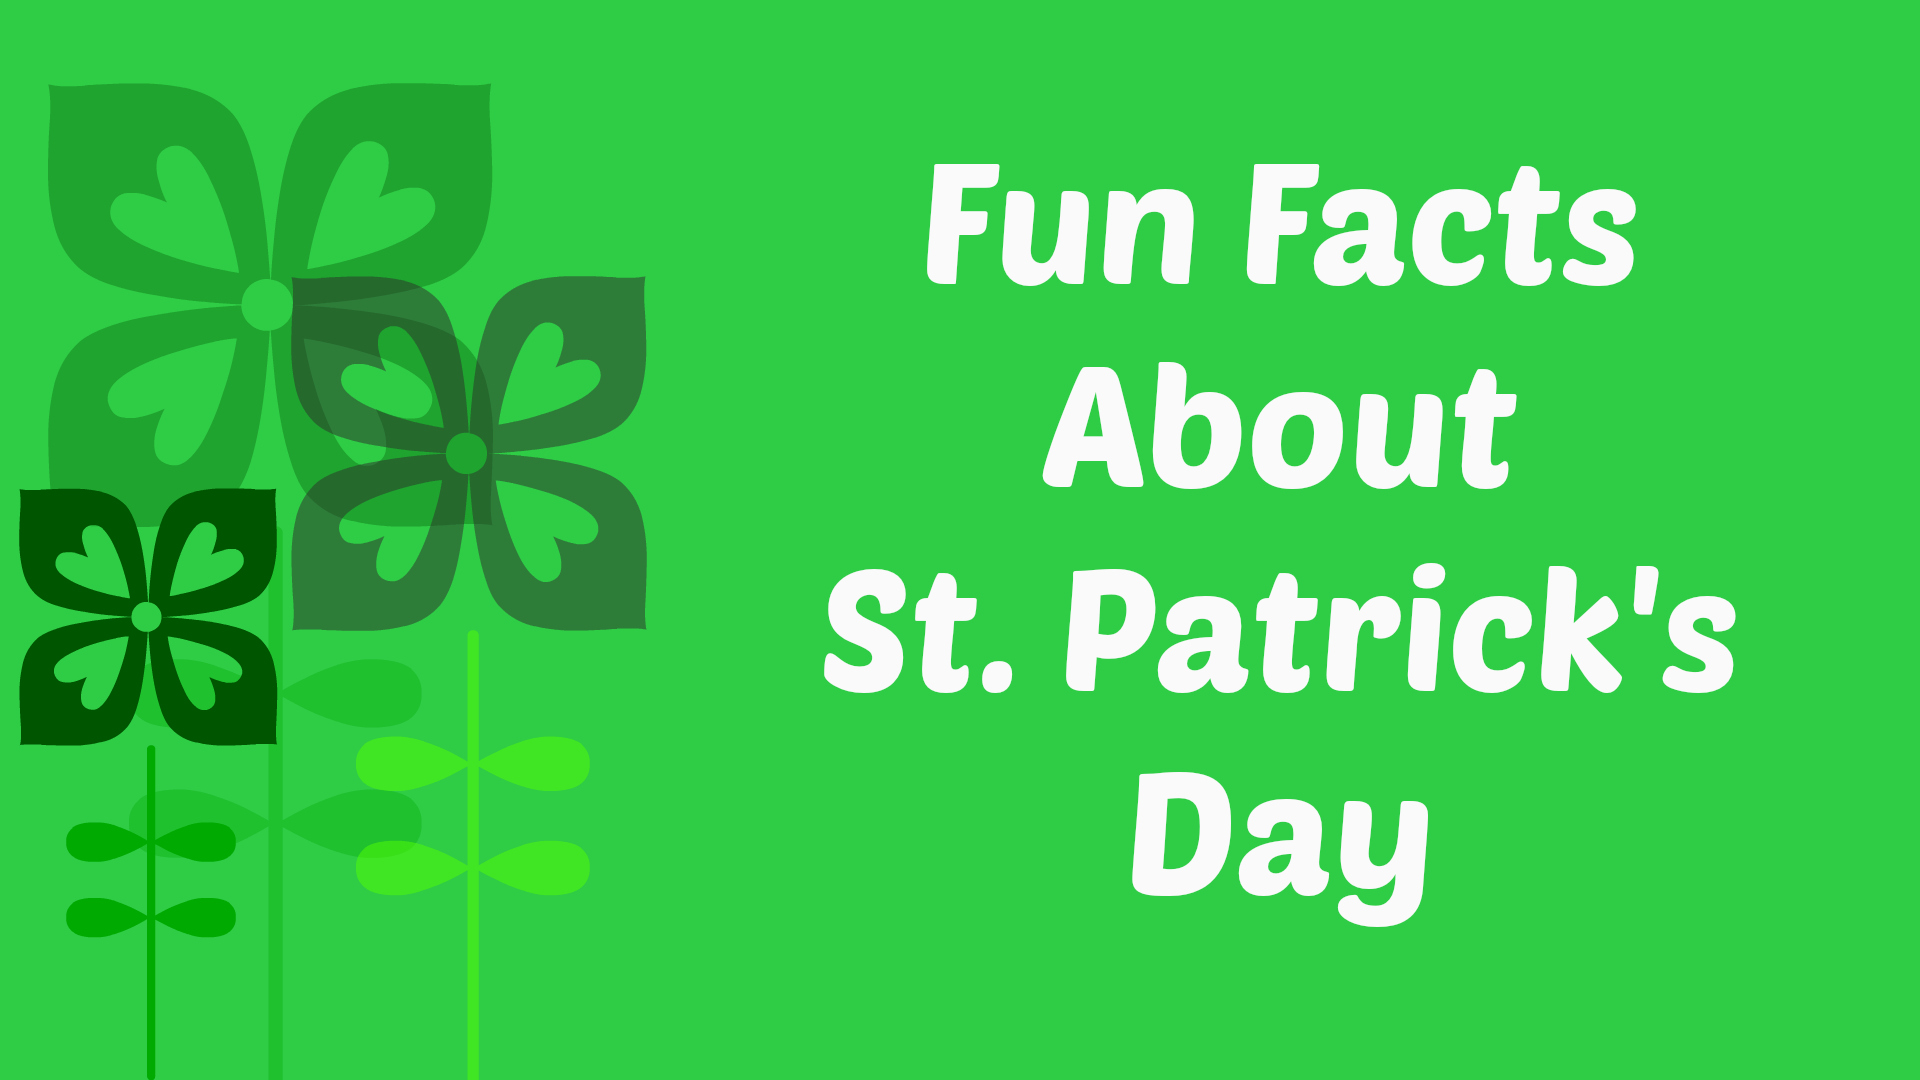 facts about saint patricks day St patrick's day: facts, history and traditions for the irish holiday by jason le miere @jasonlemiere on 03/15/17 at 11:10 am millions of people around the world.